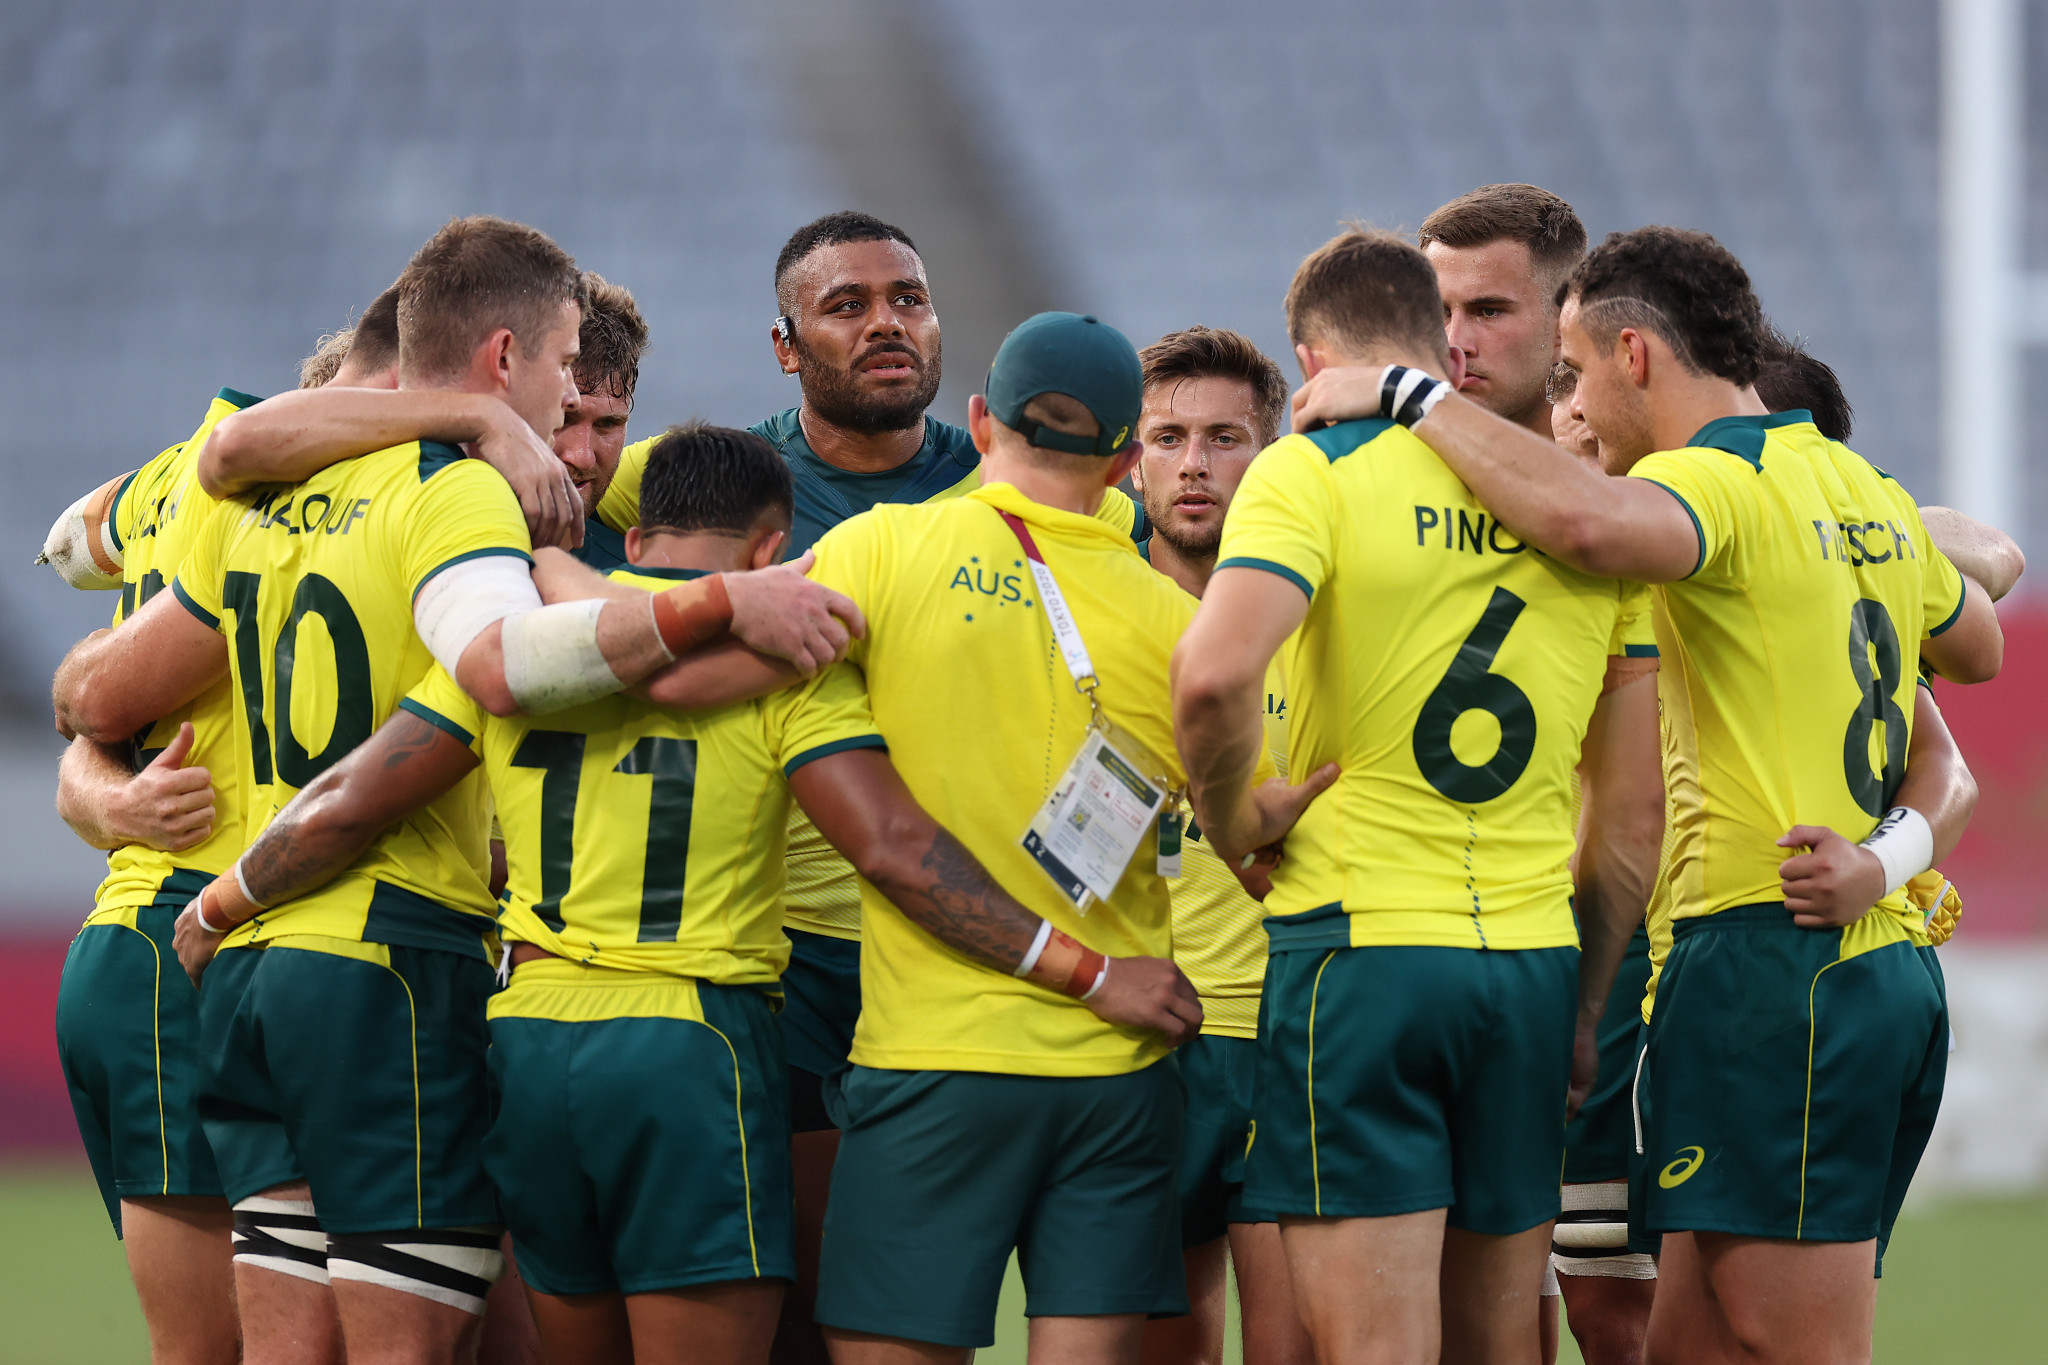 Players reprimanded by Rugby Australia over drunken antics on plane from Tokyo